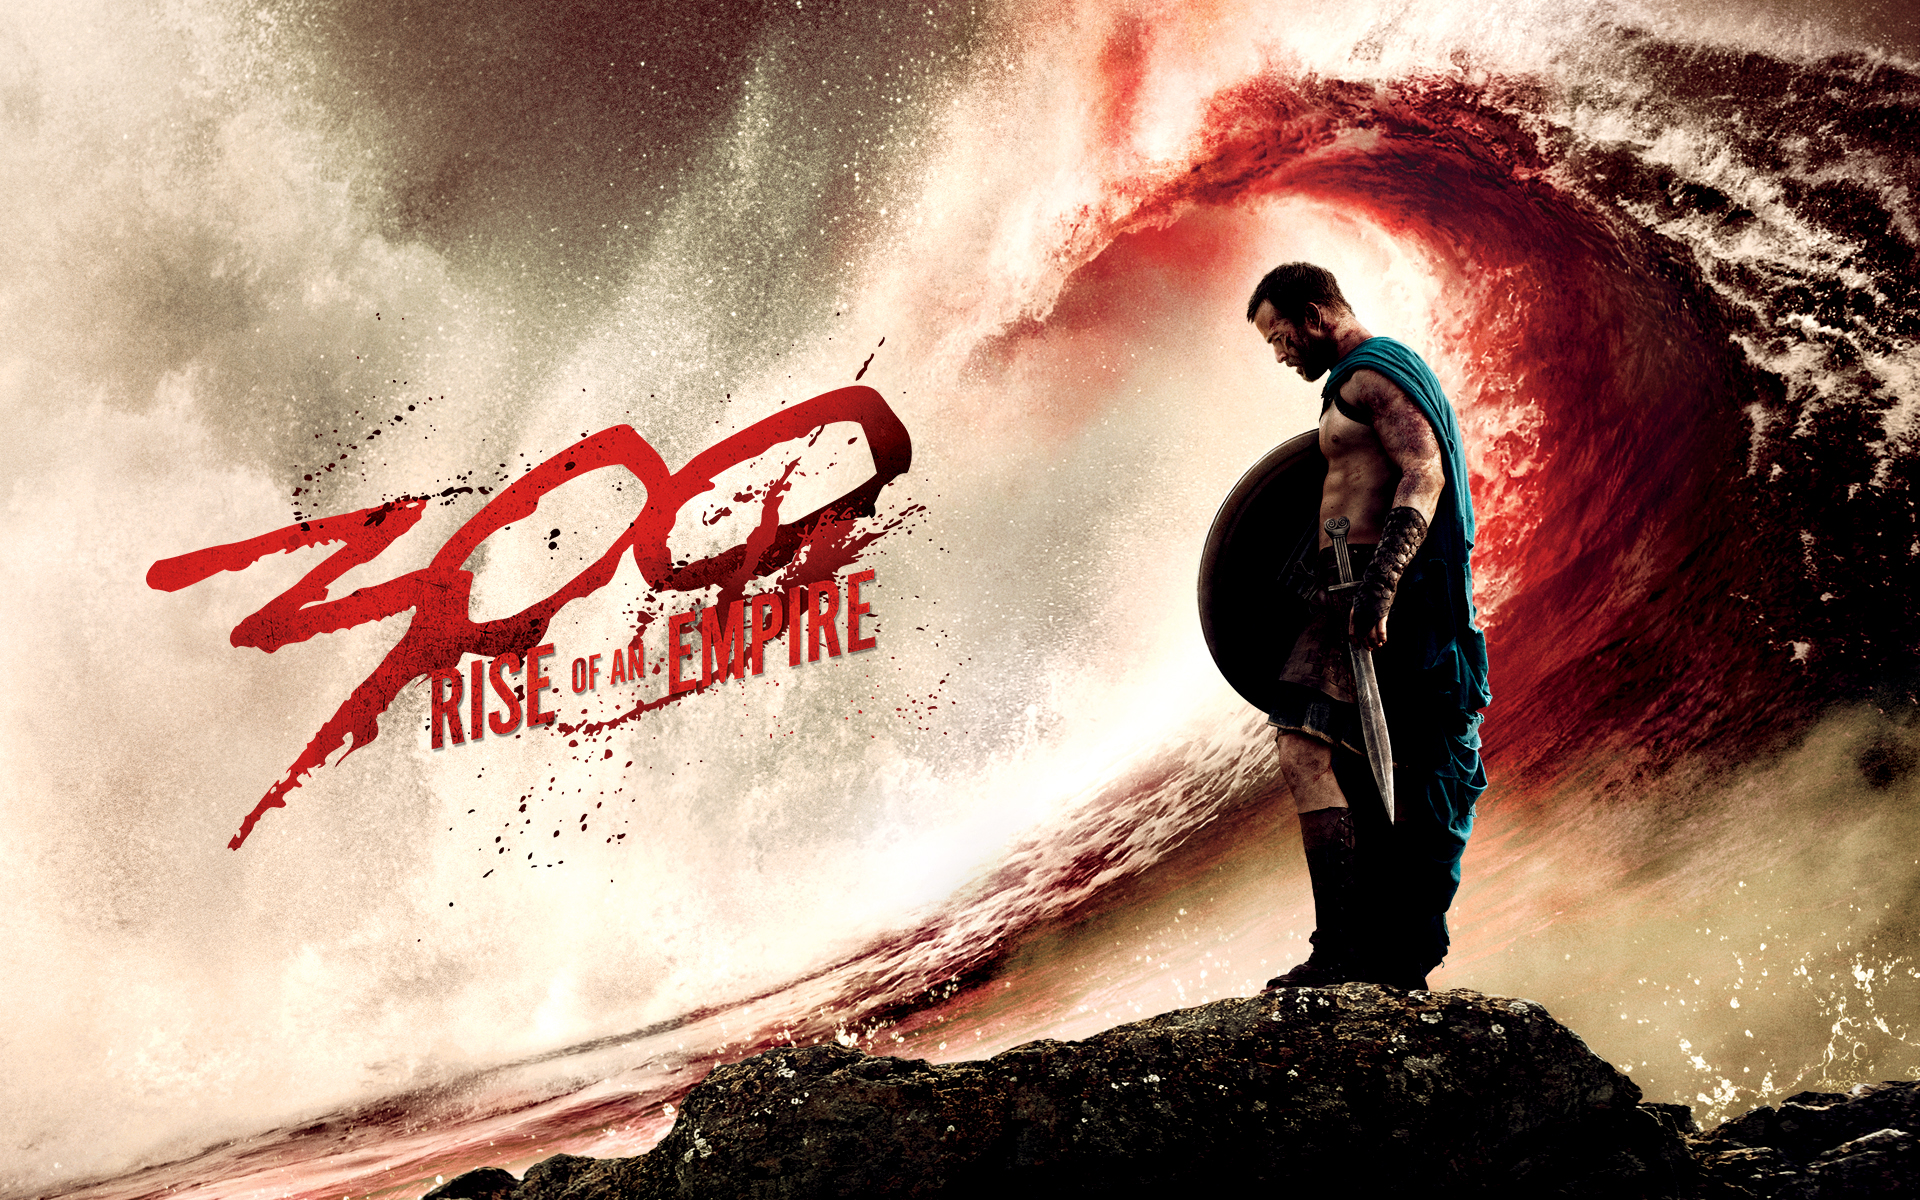 300 the rise of the empire movie download